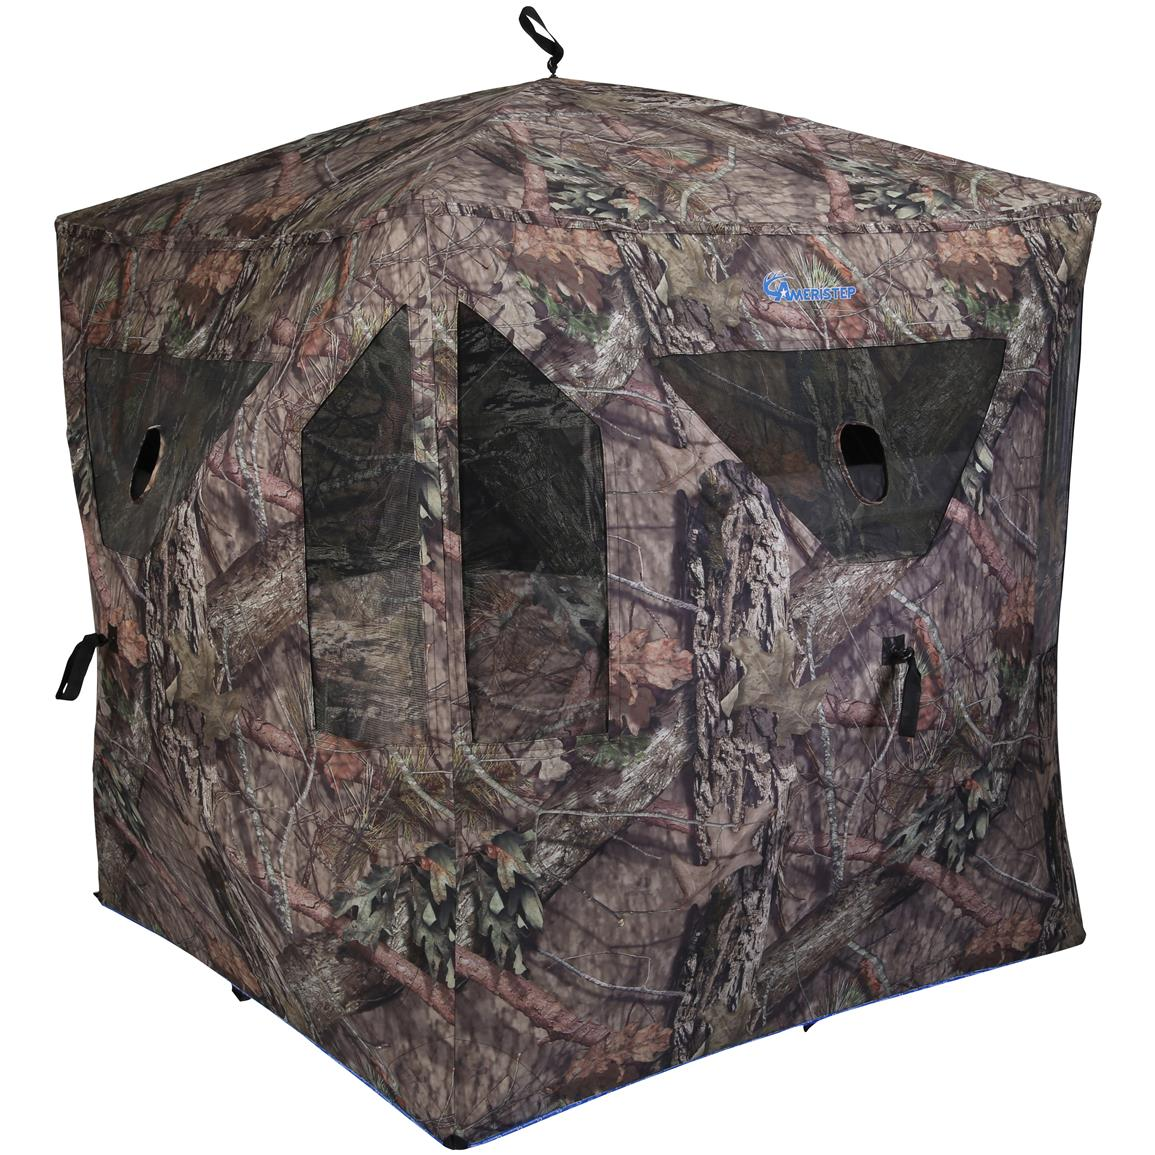 Mossy Oak Break-Up Country camo pattern